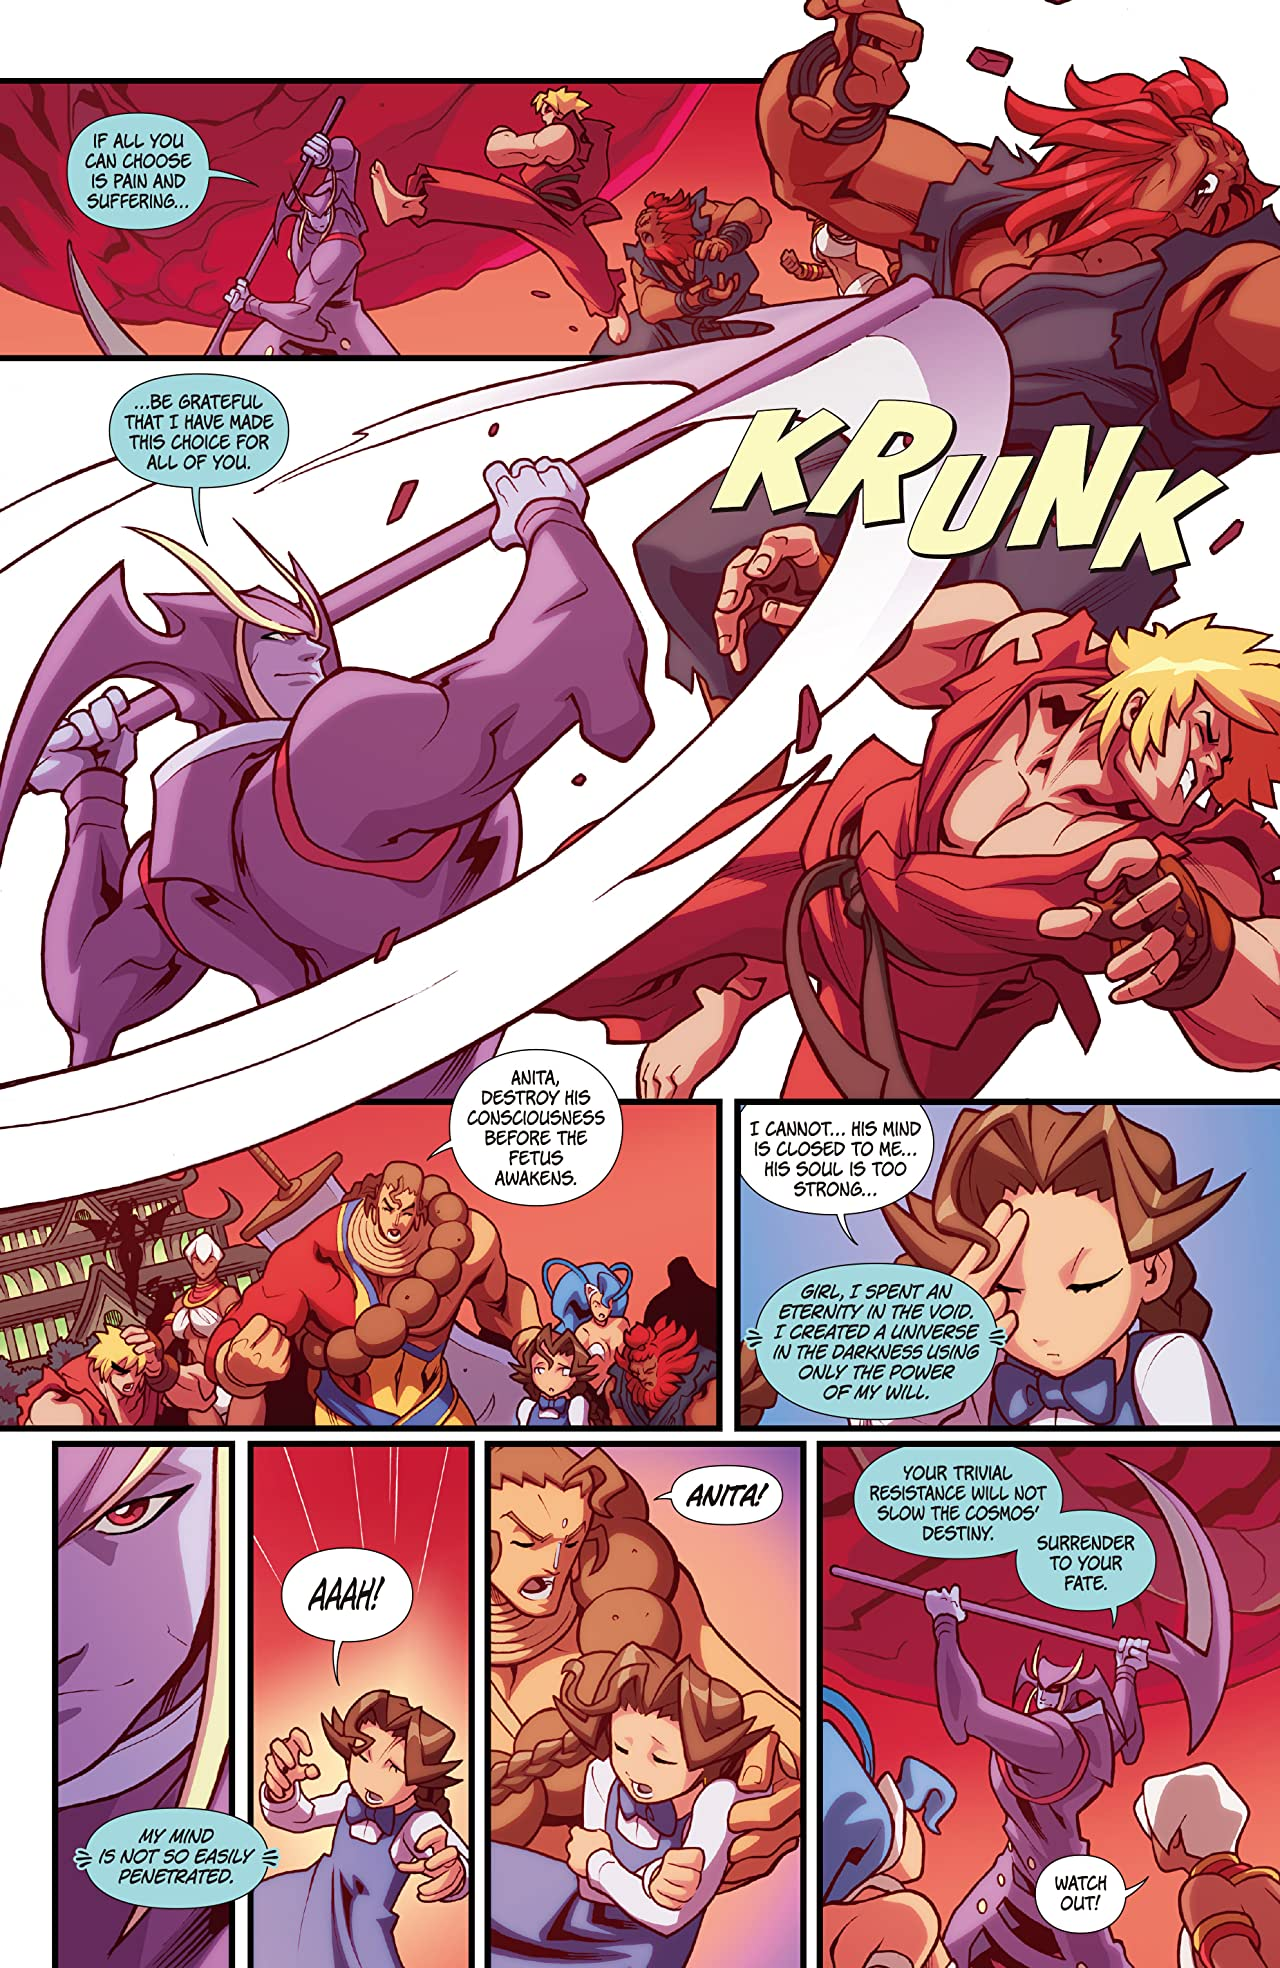 Street Fighter VS Darkstalkers #8 (of 8)